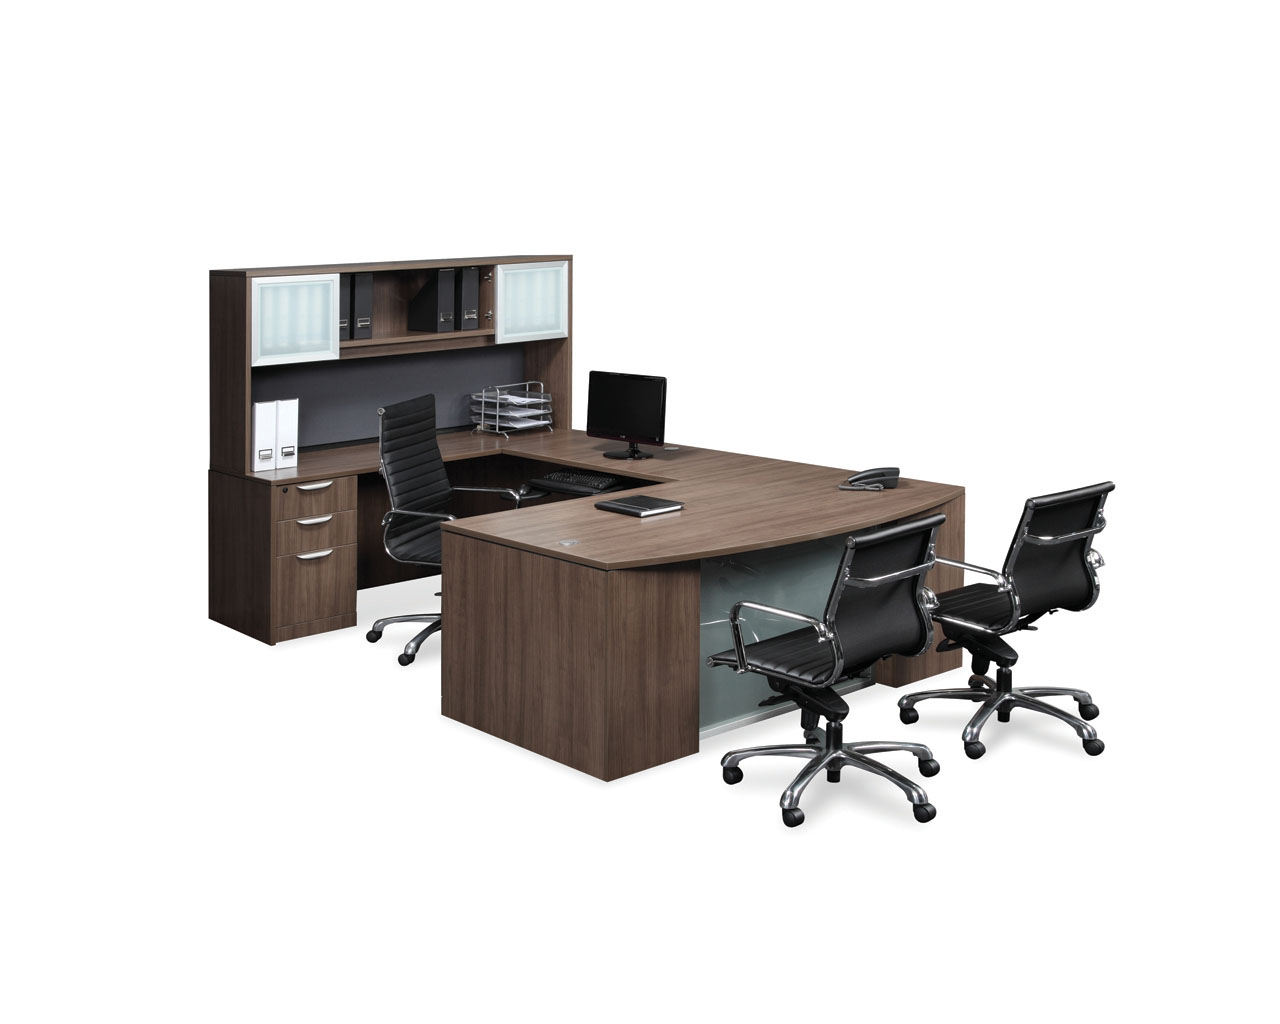 Classic Plus Bowfront Desk with a Box/Box/File Pedestal and Optional Upgraded Glass Modesty Panel and Hutch